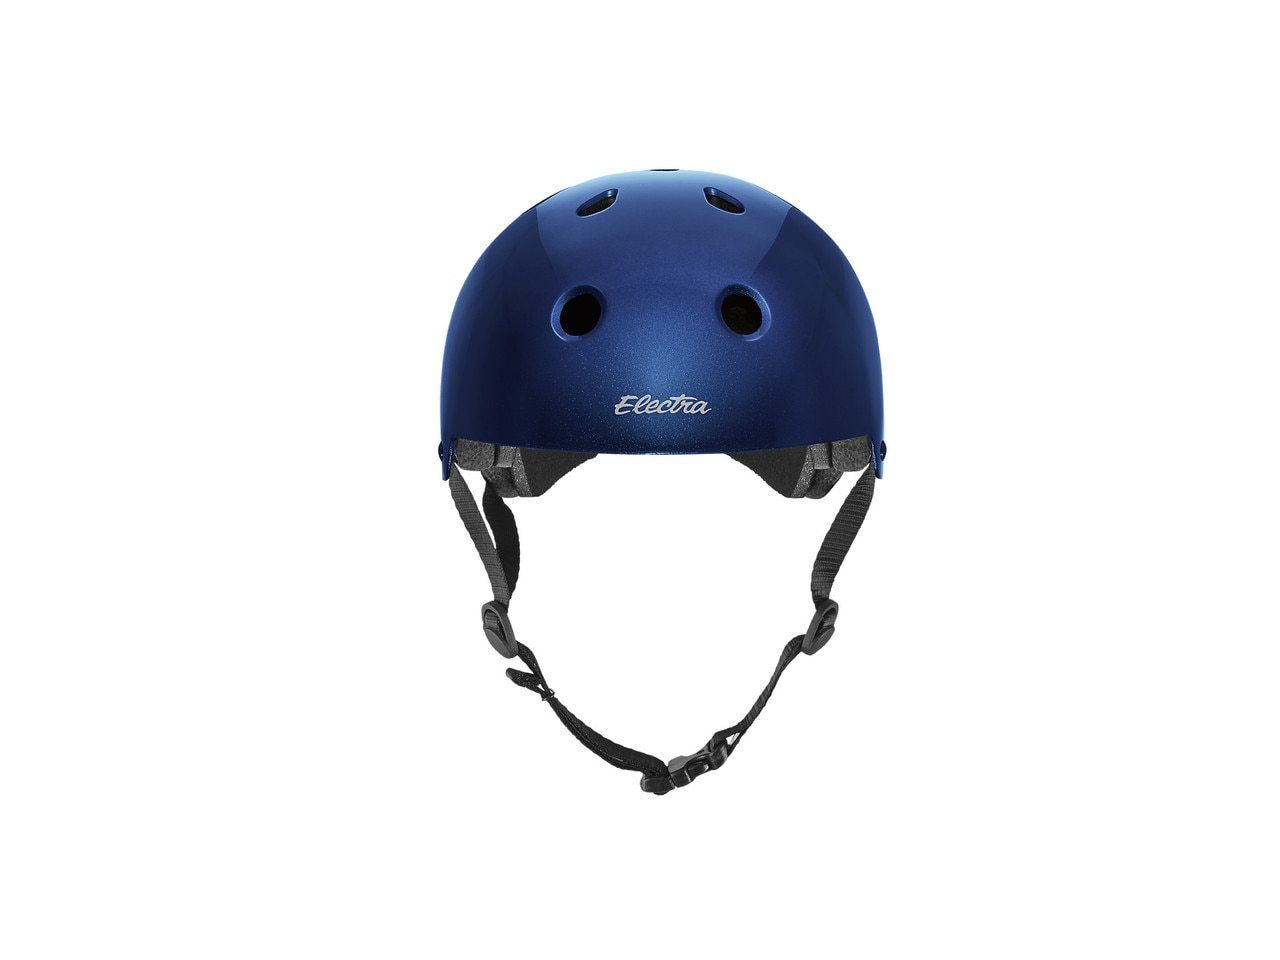 Electra Lifestyle Helmet Oxford Blue - small